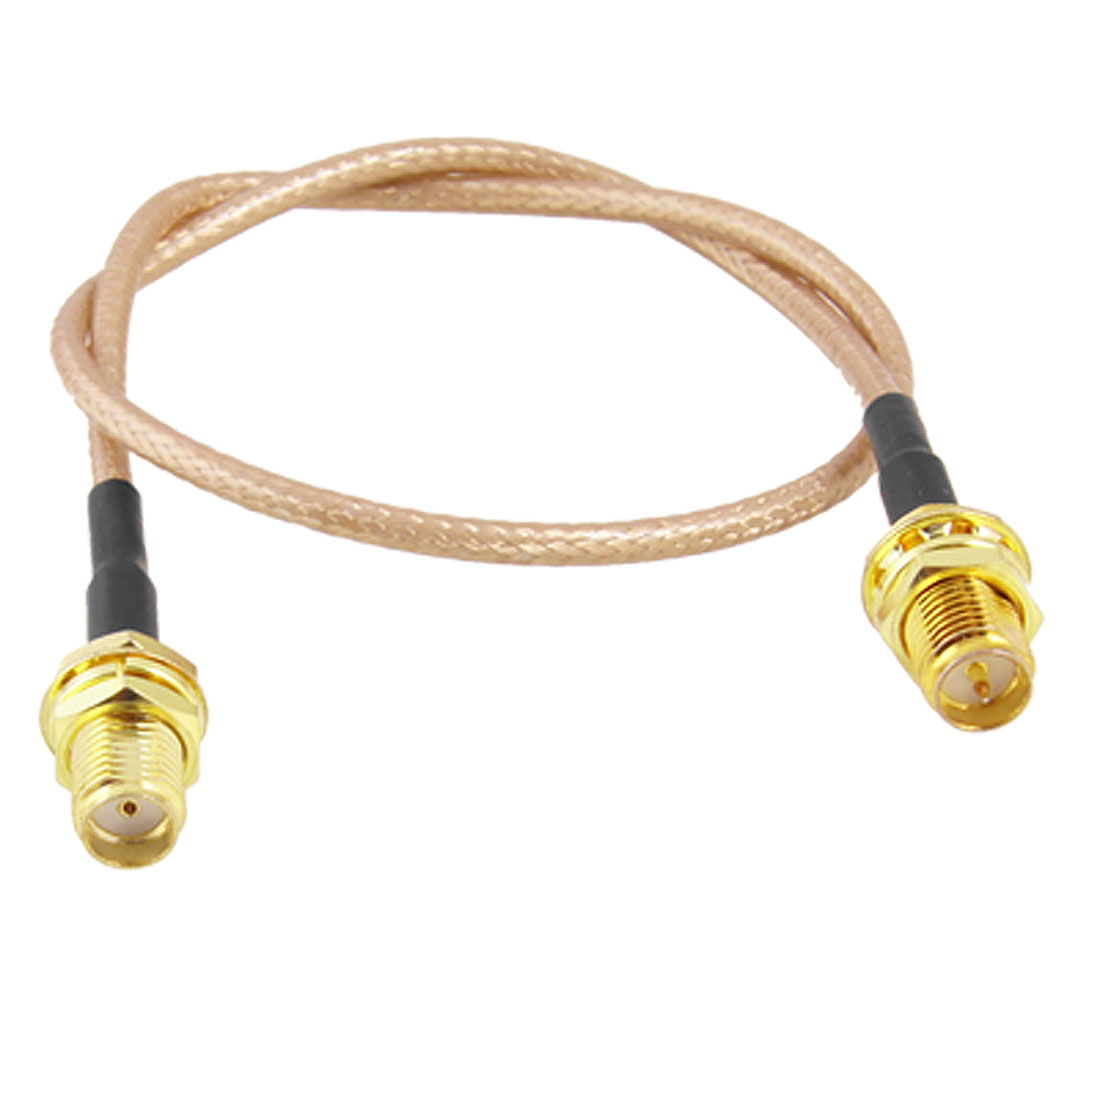 SMA Female to RP-SMA Female RF Connector Pigtail Cable 12.4""